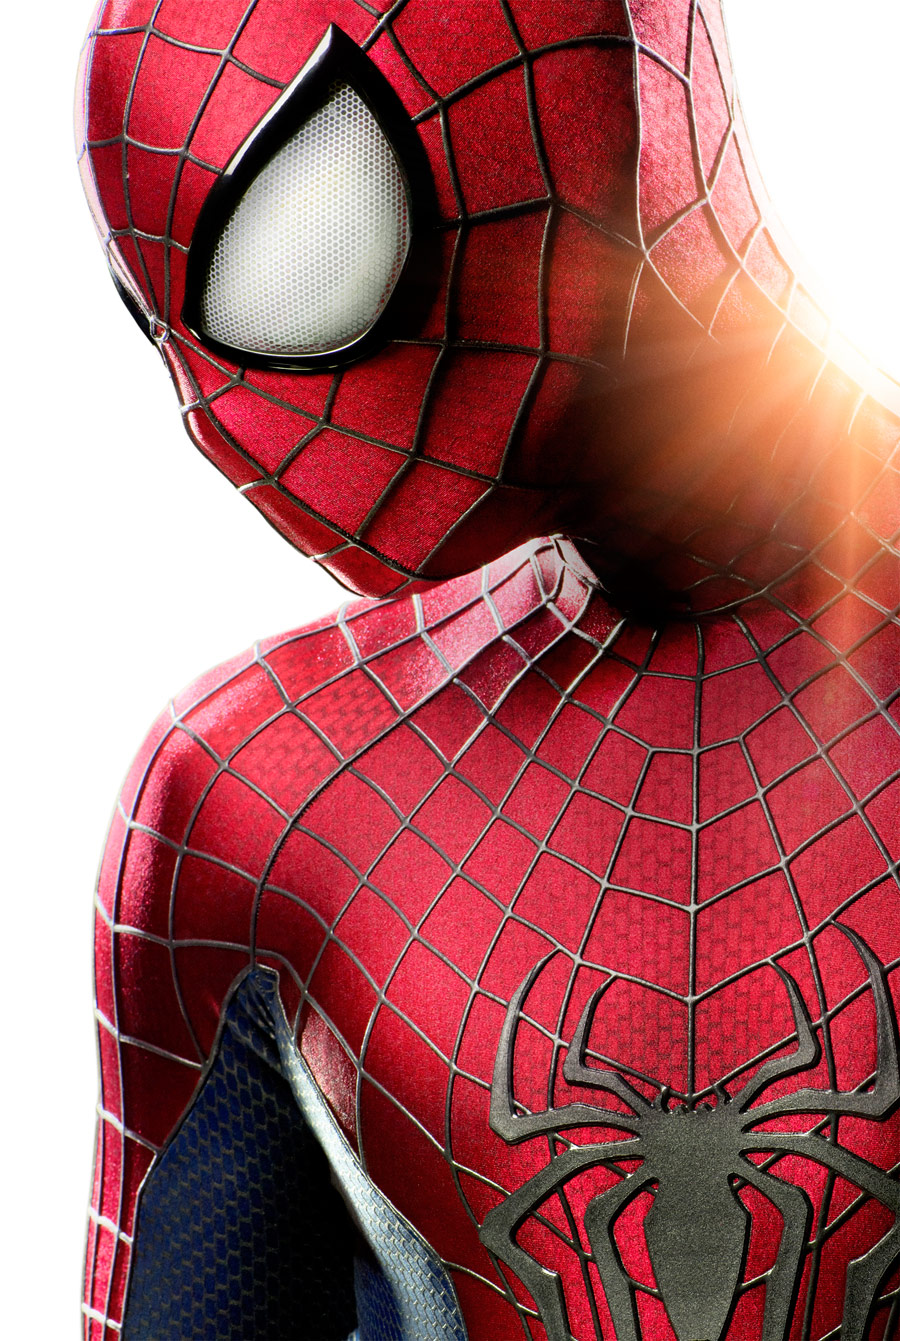 The Amazing Spiderman 2 ya rueda.